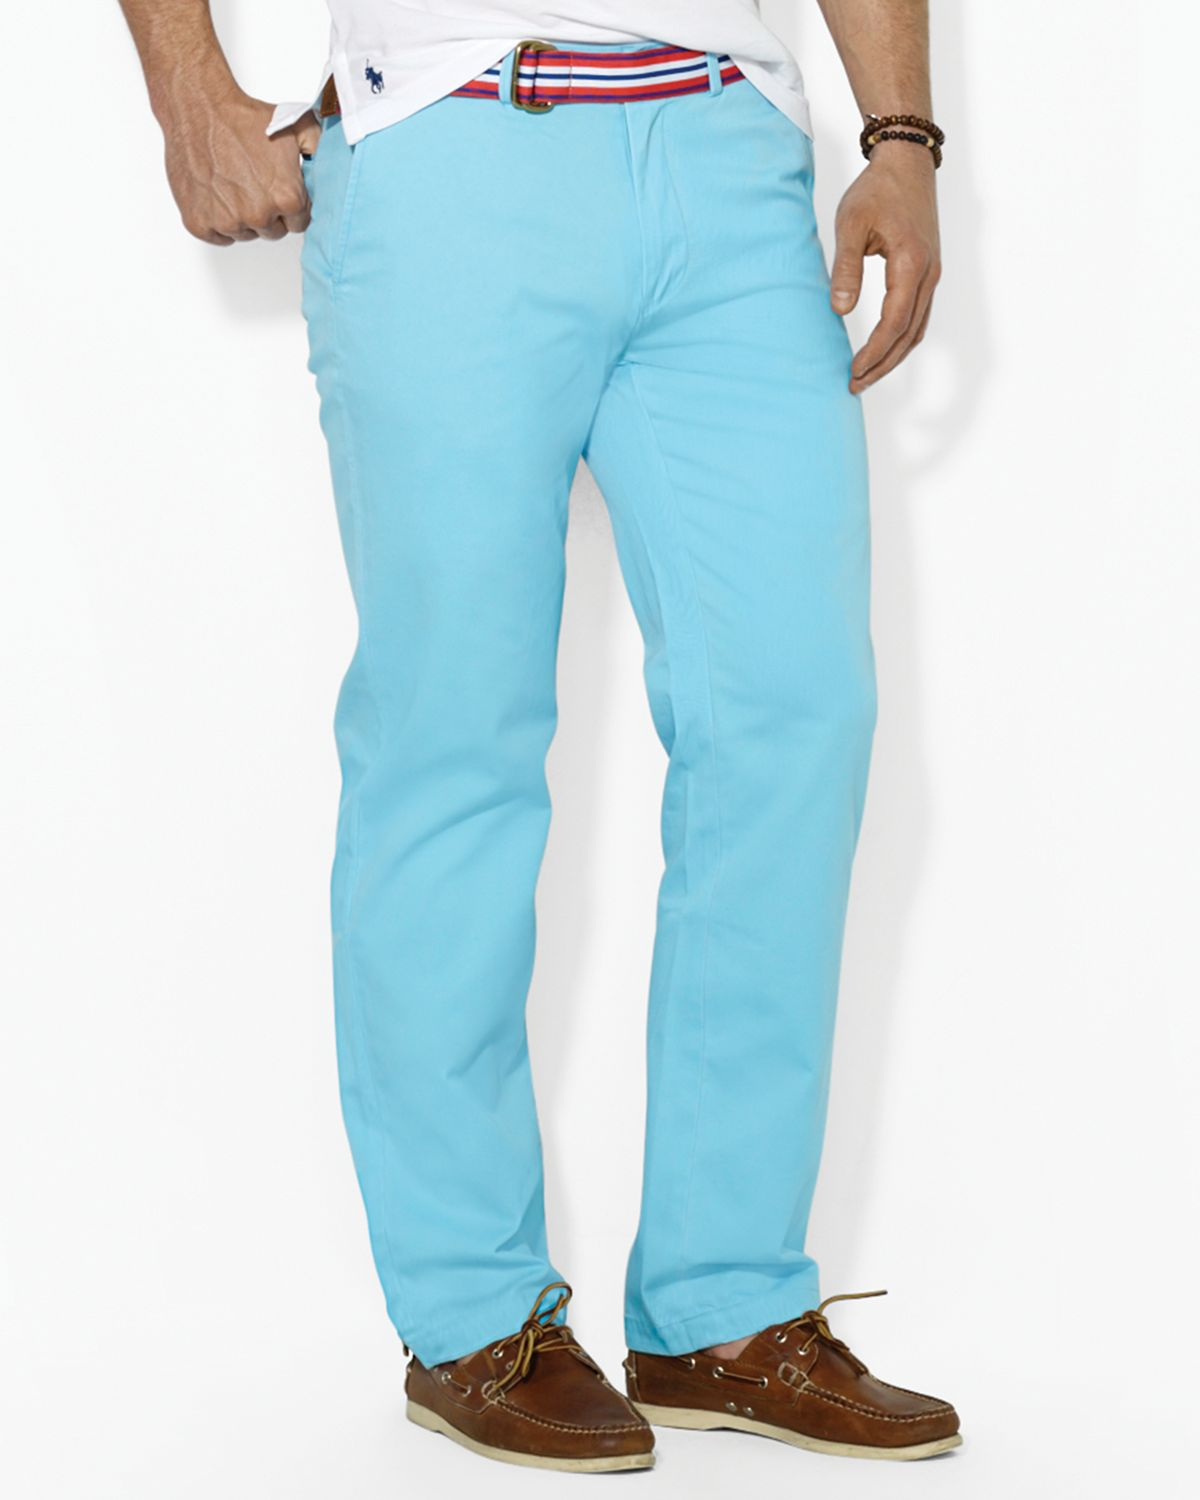 516f32c37cde denmark lyst ralph lauren polo classicfit flatfront chino pant in blue for  men 48c35 b5465